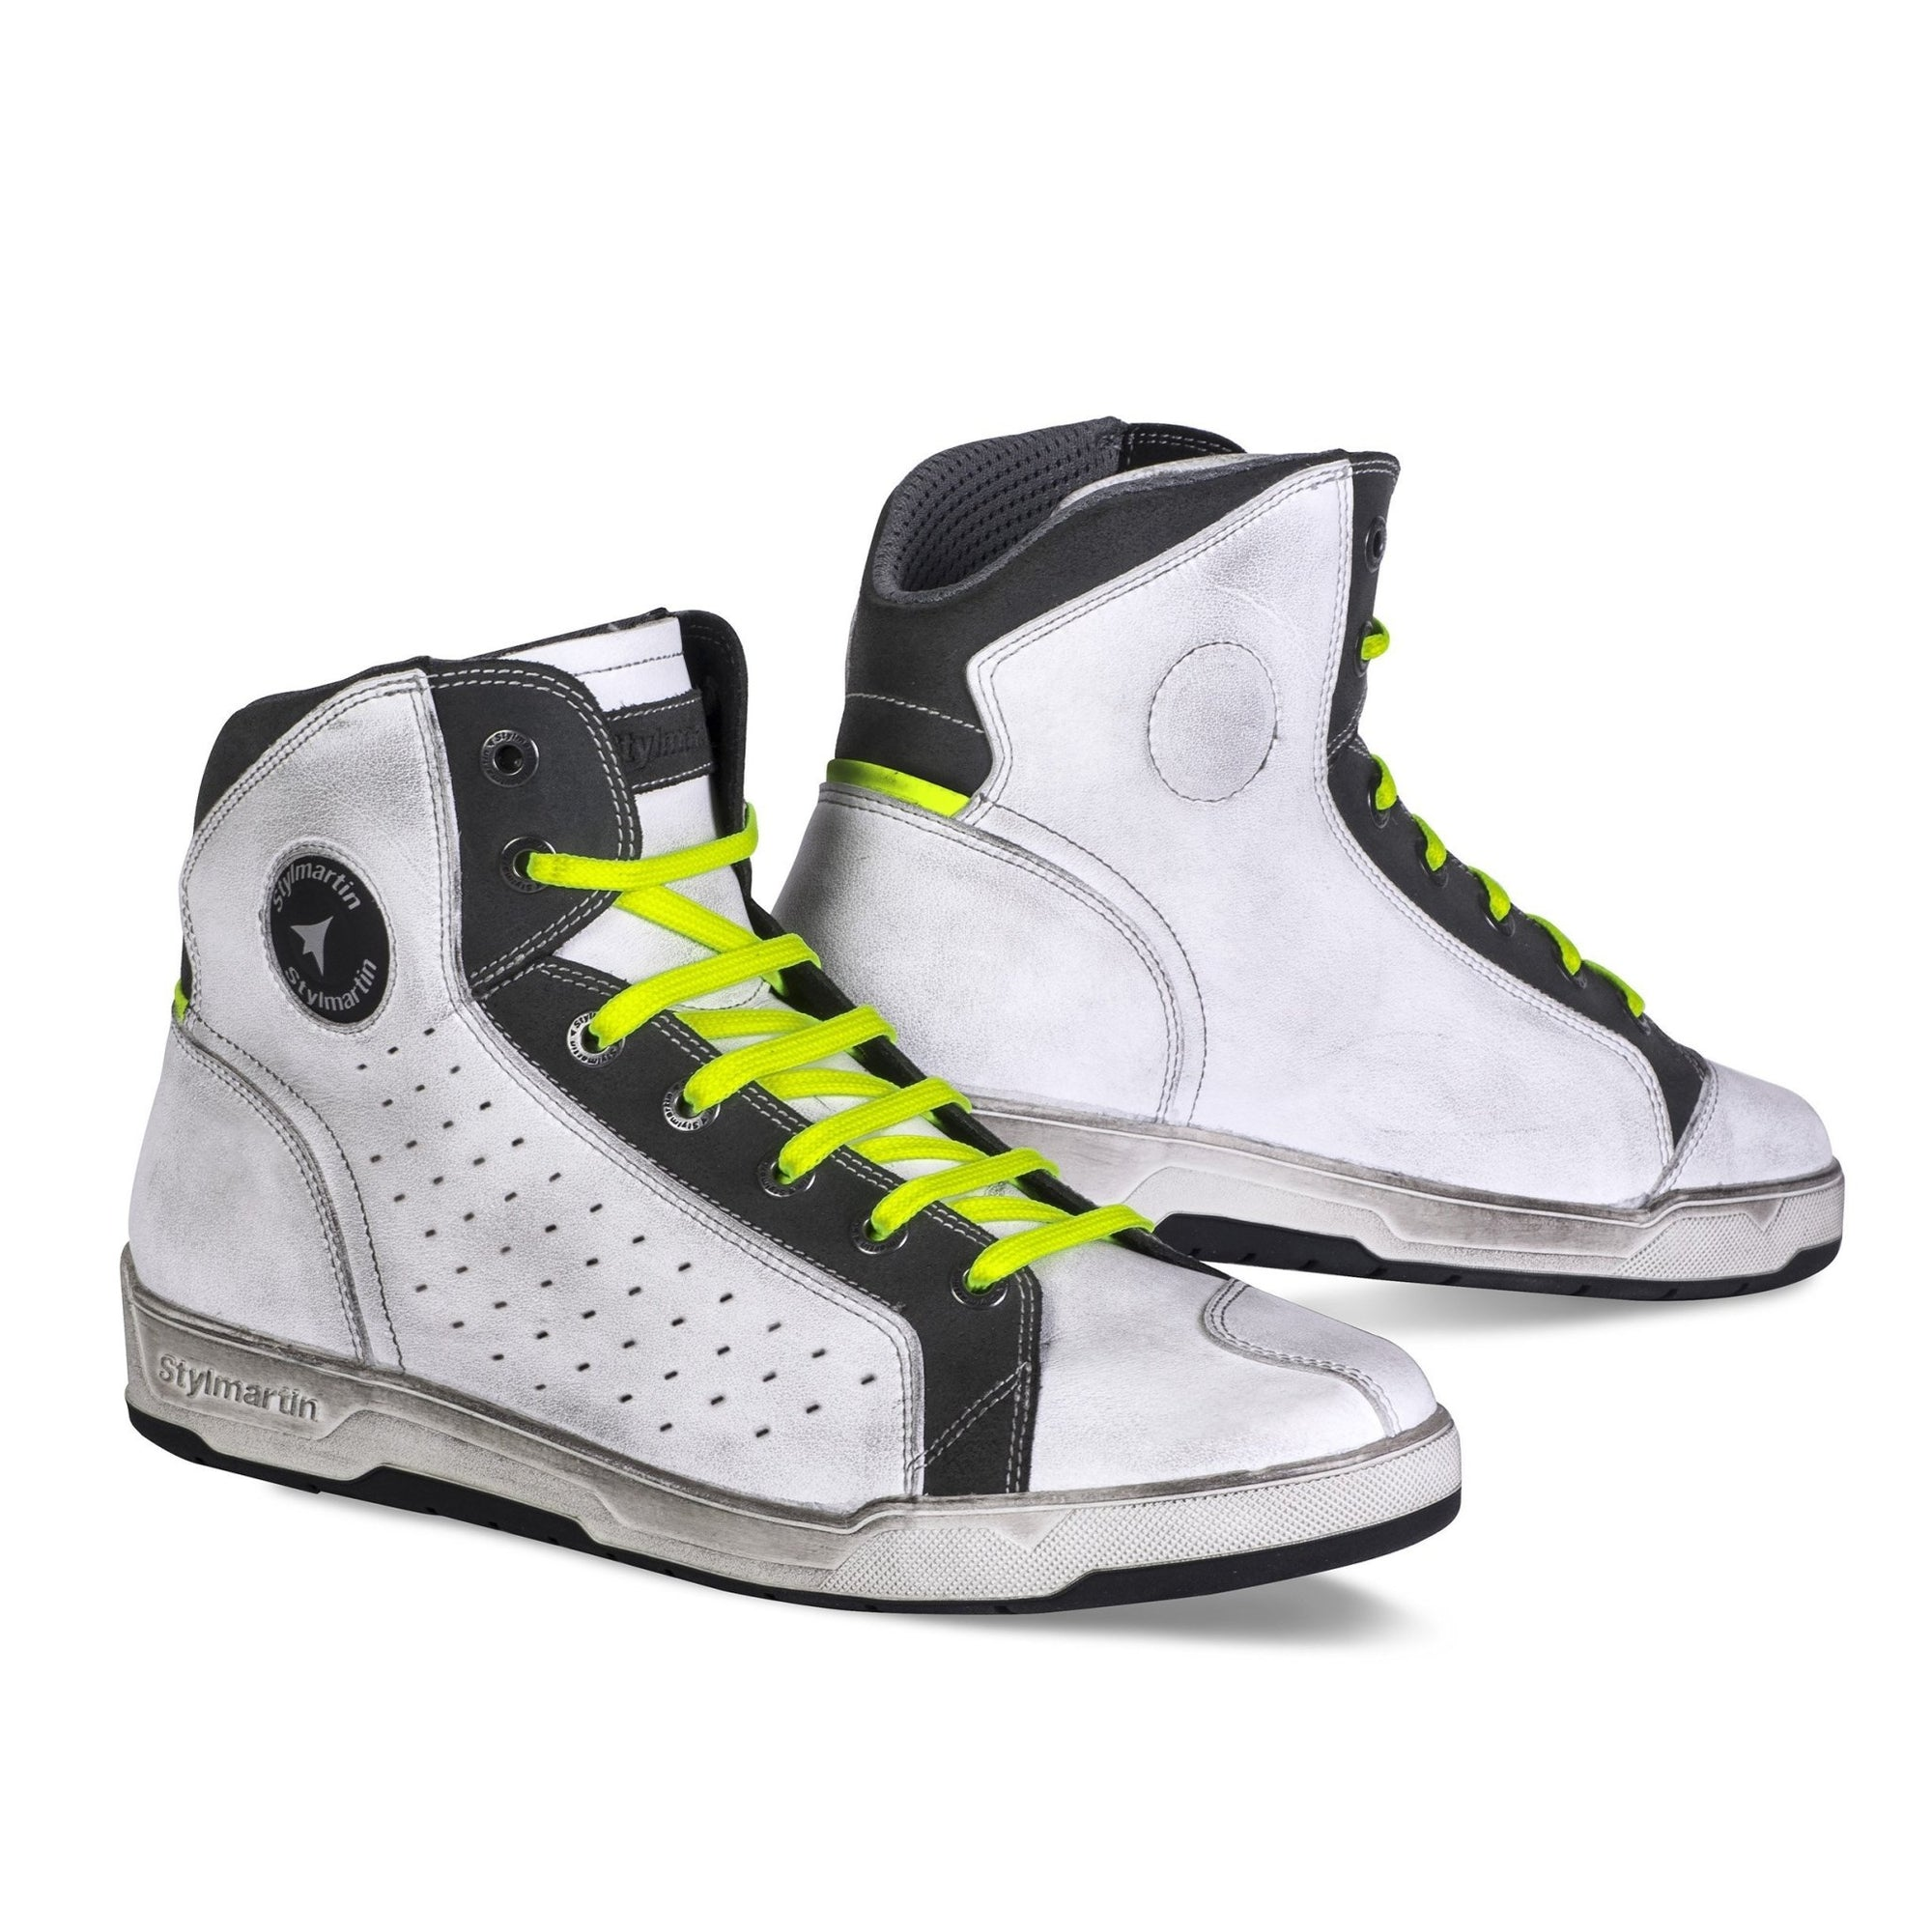 Stylmartin - Stylmartin Sector Sneaker in White - Boots - Salt Flats Clothing